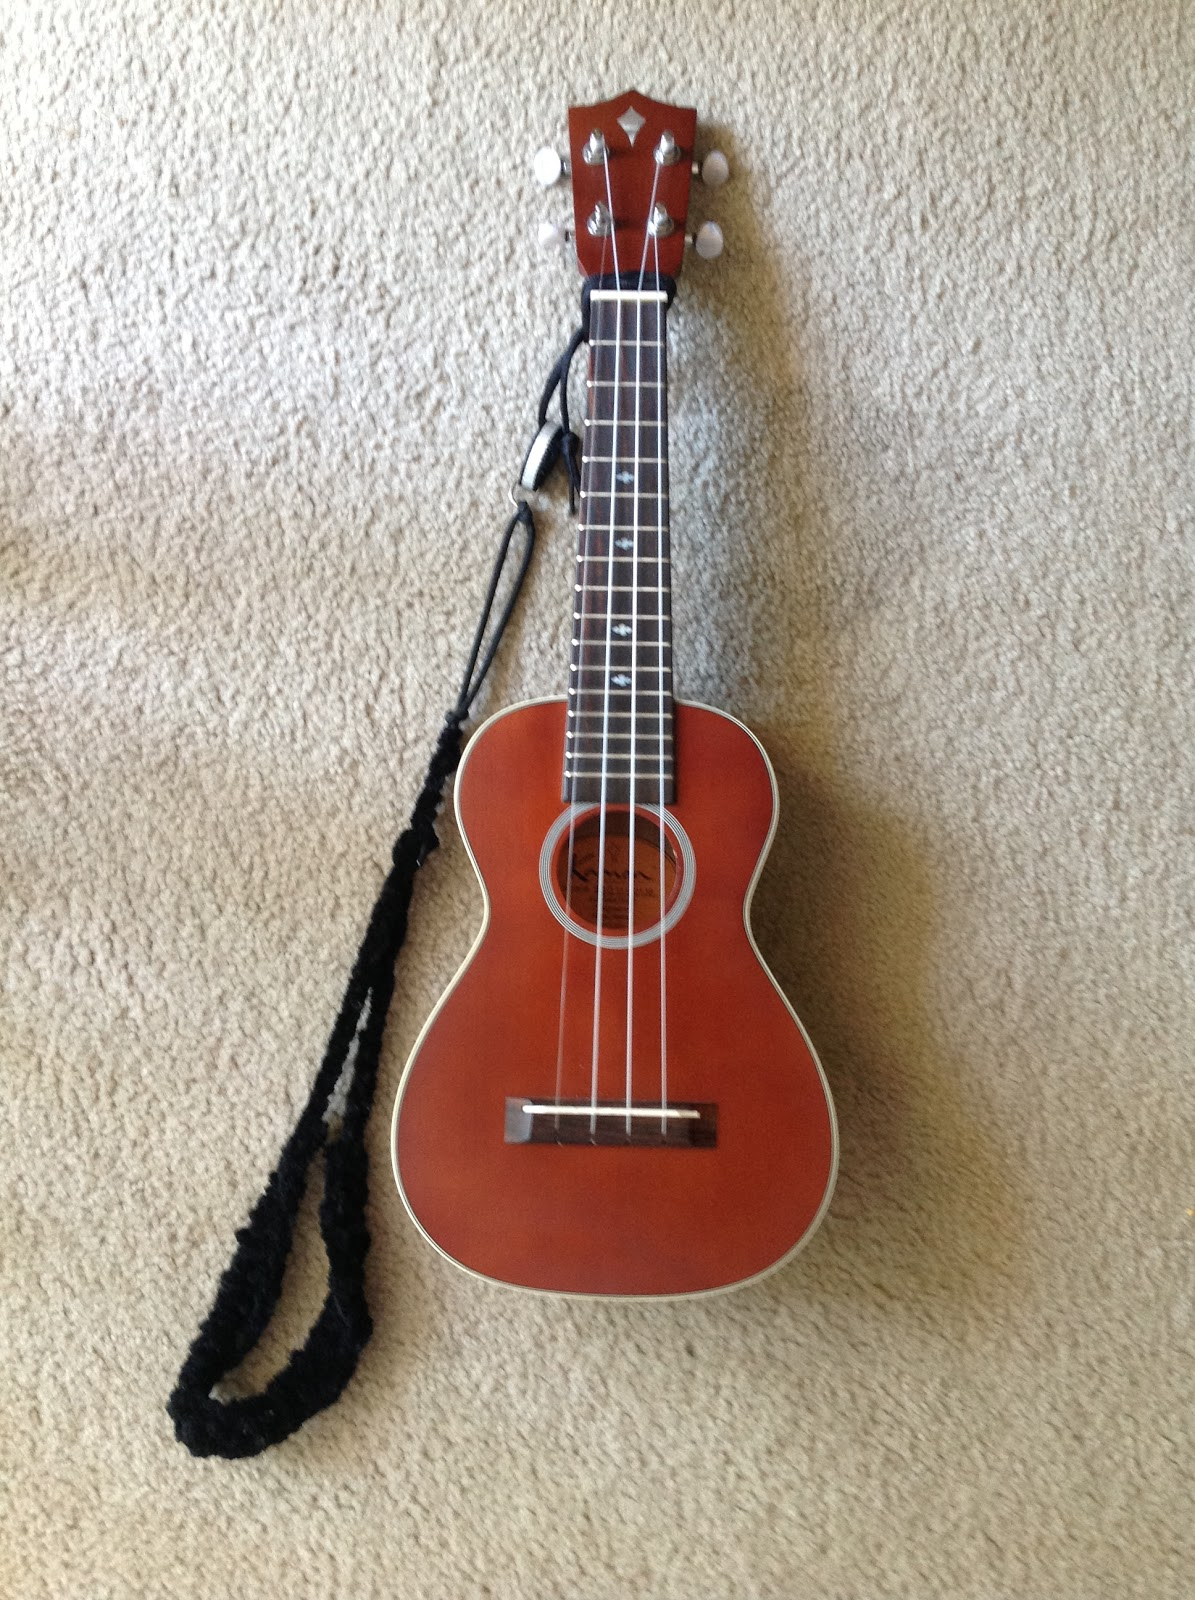 homemade uke leash